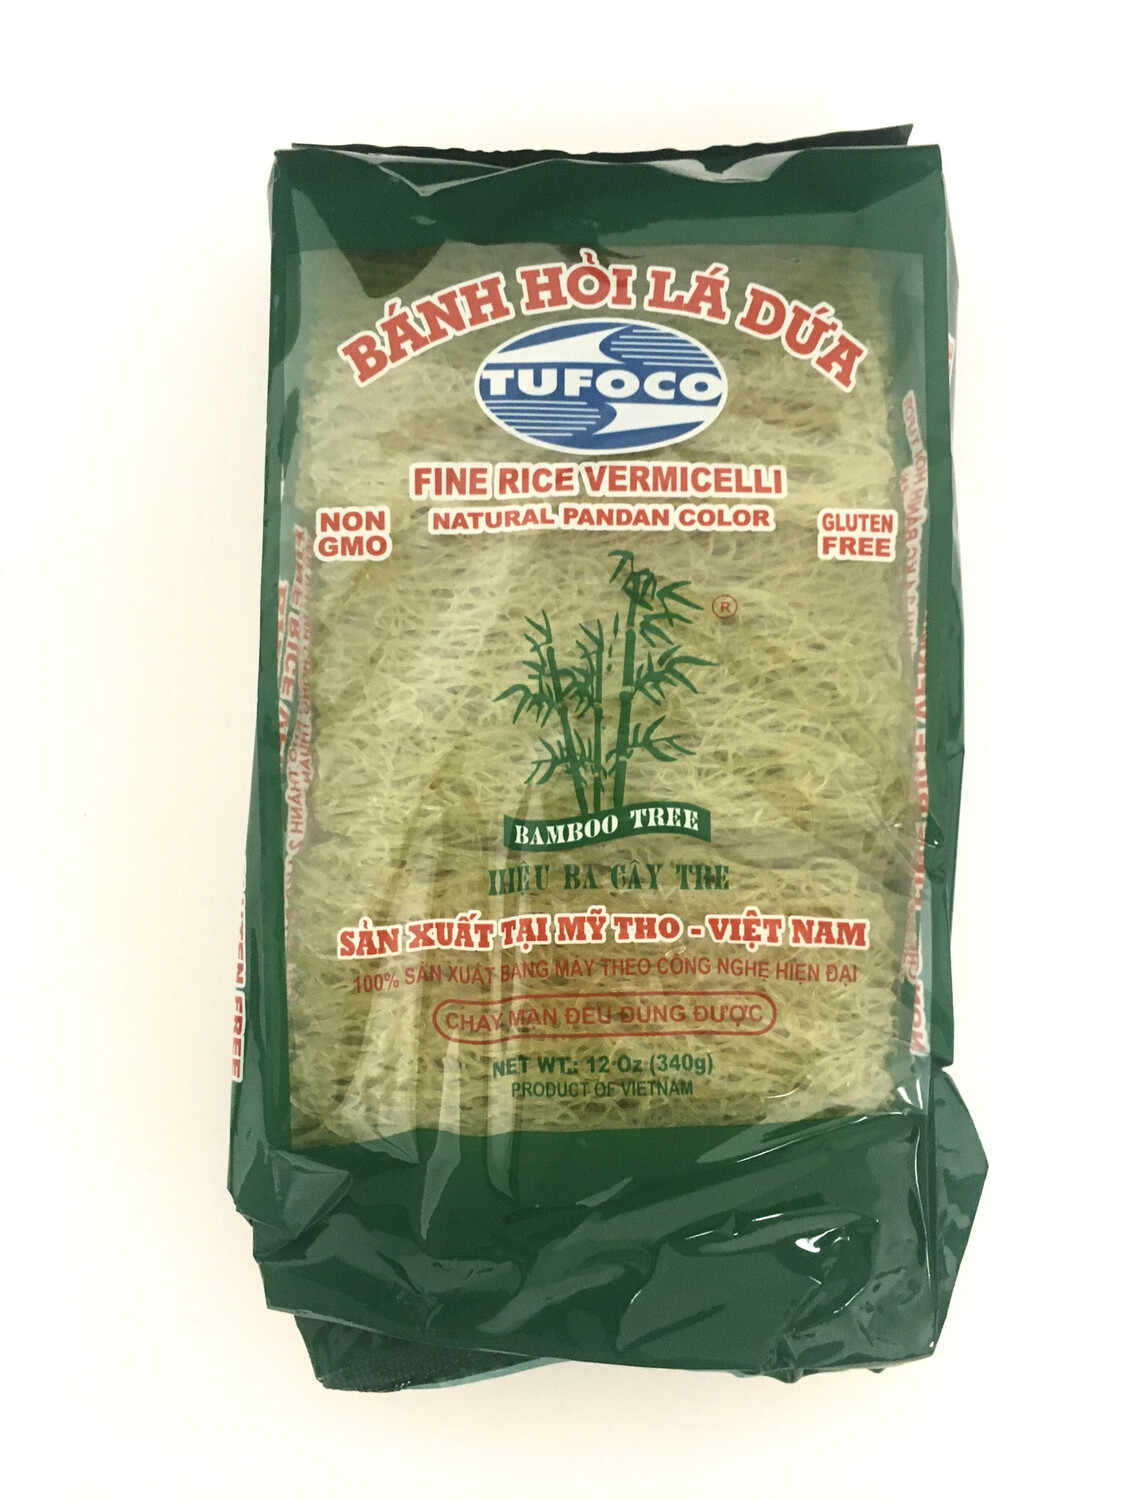 TUFOCO FINE RICE VERMICELLI NATURAL PANDAN COLOR 40X340G